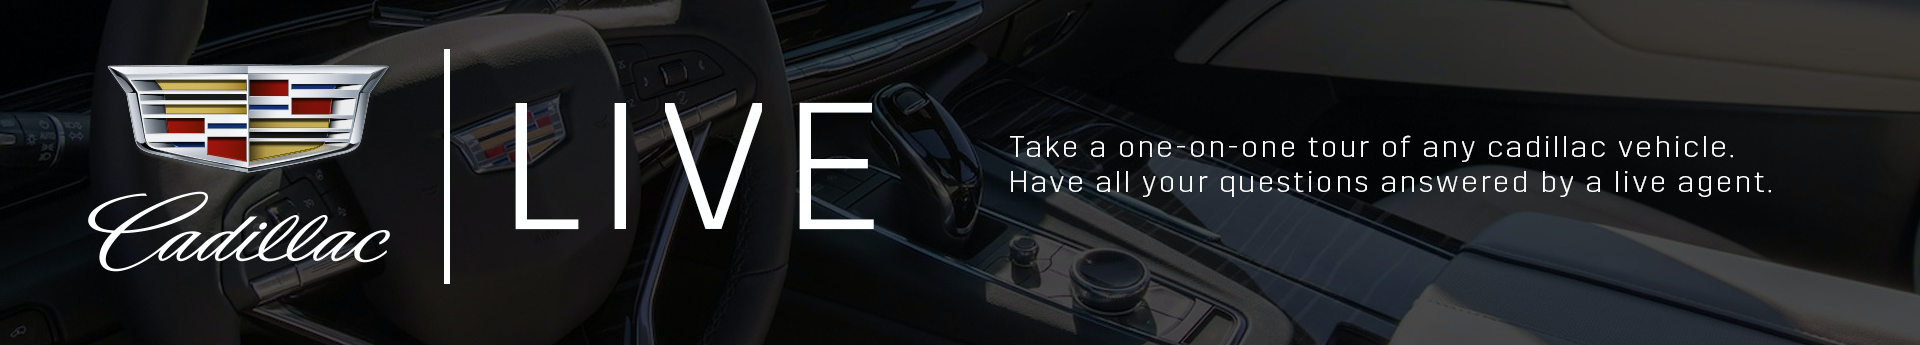 LIVE - Take a one on one tour of any Cadillac vehicle. Have all your questions answered by a live agent.